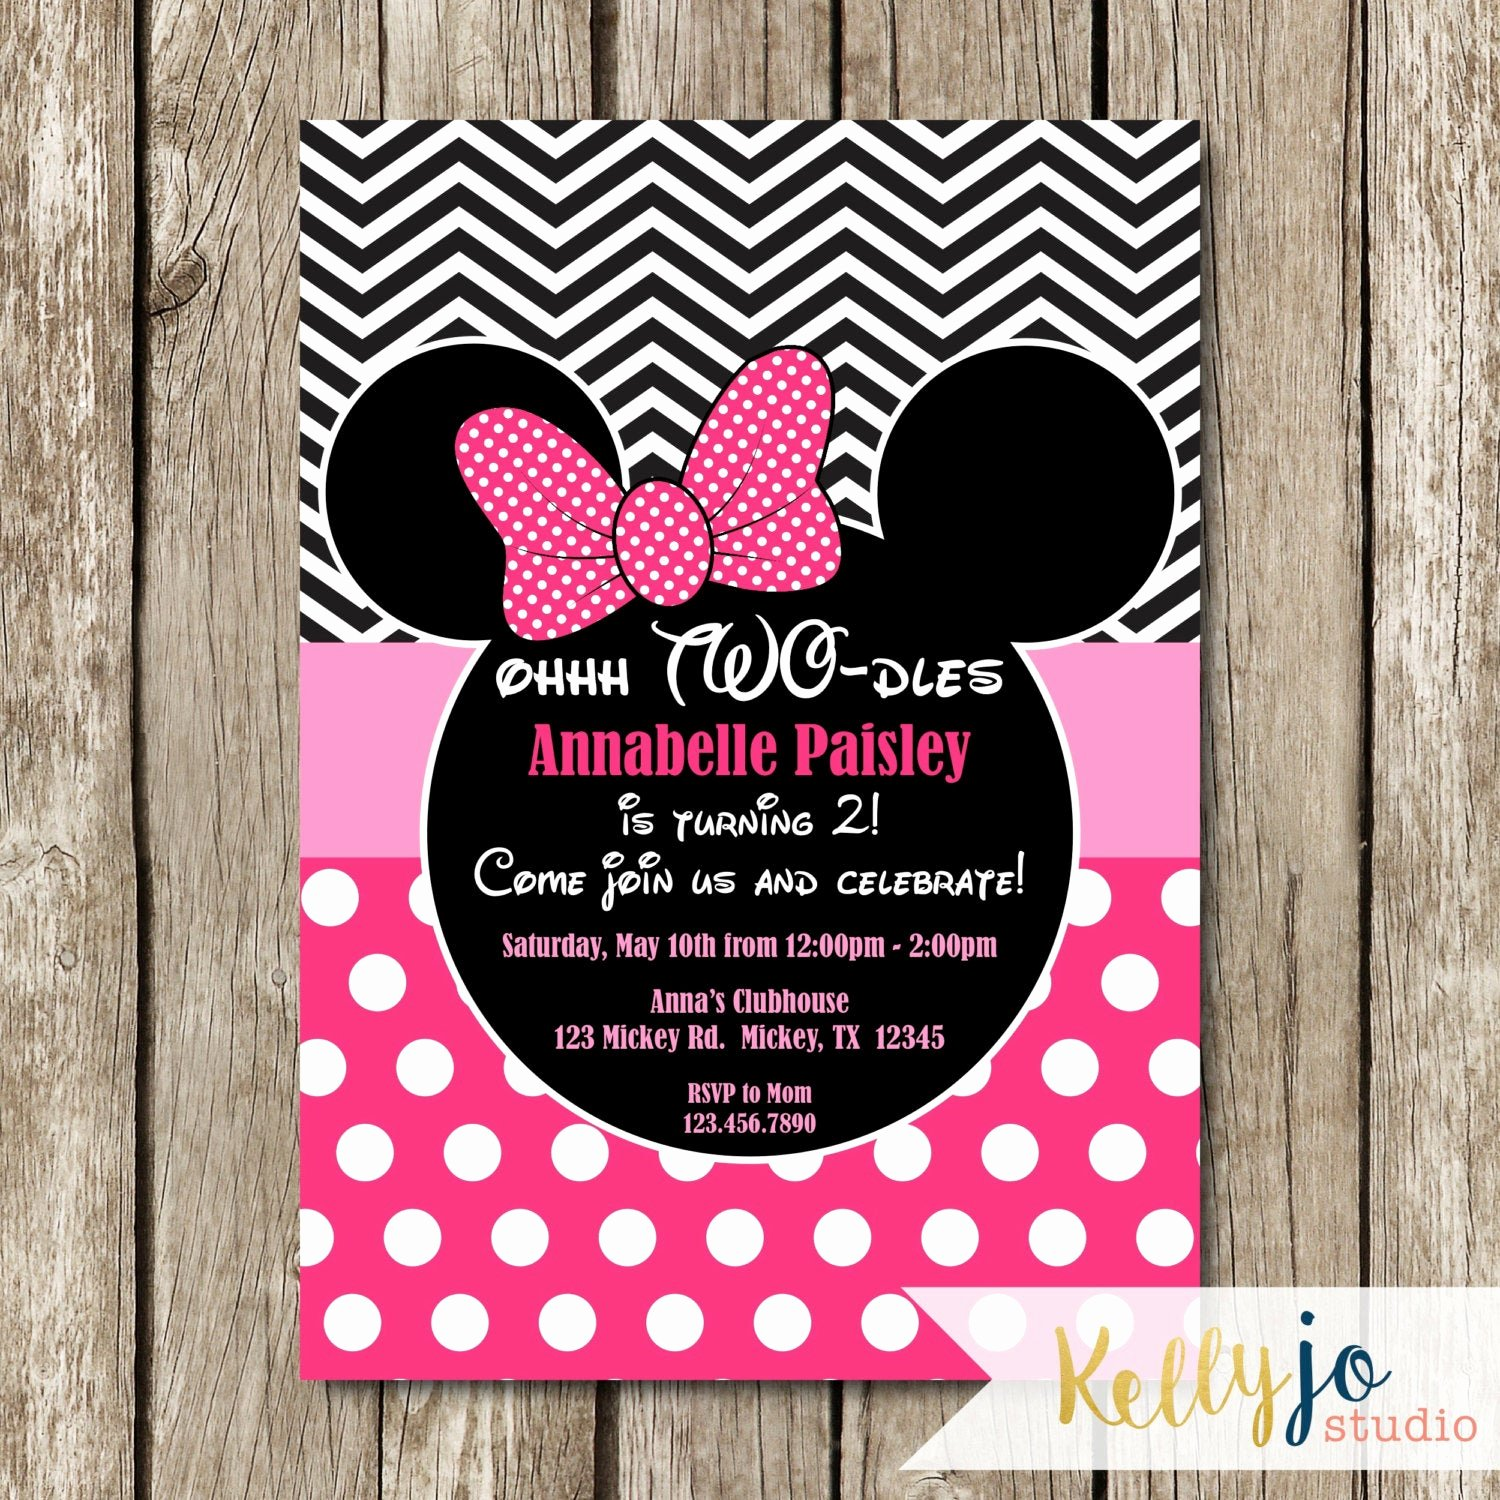 Minnie Mouse Birthday Invitations Lovely Pink Minnie Mouse Oh Two Dles Birthday Invites Pink Minnie